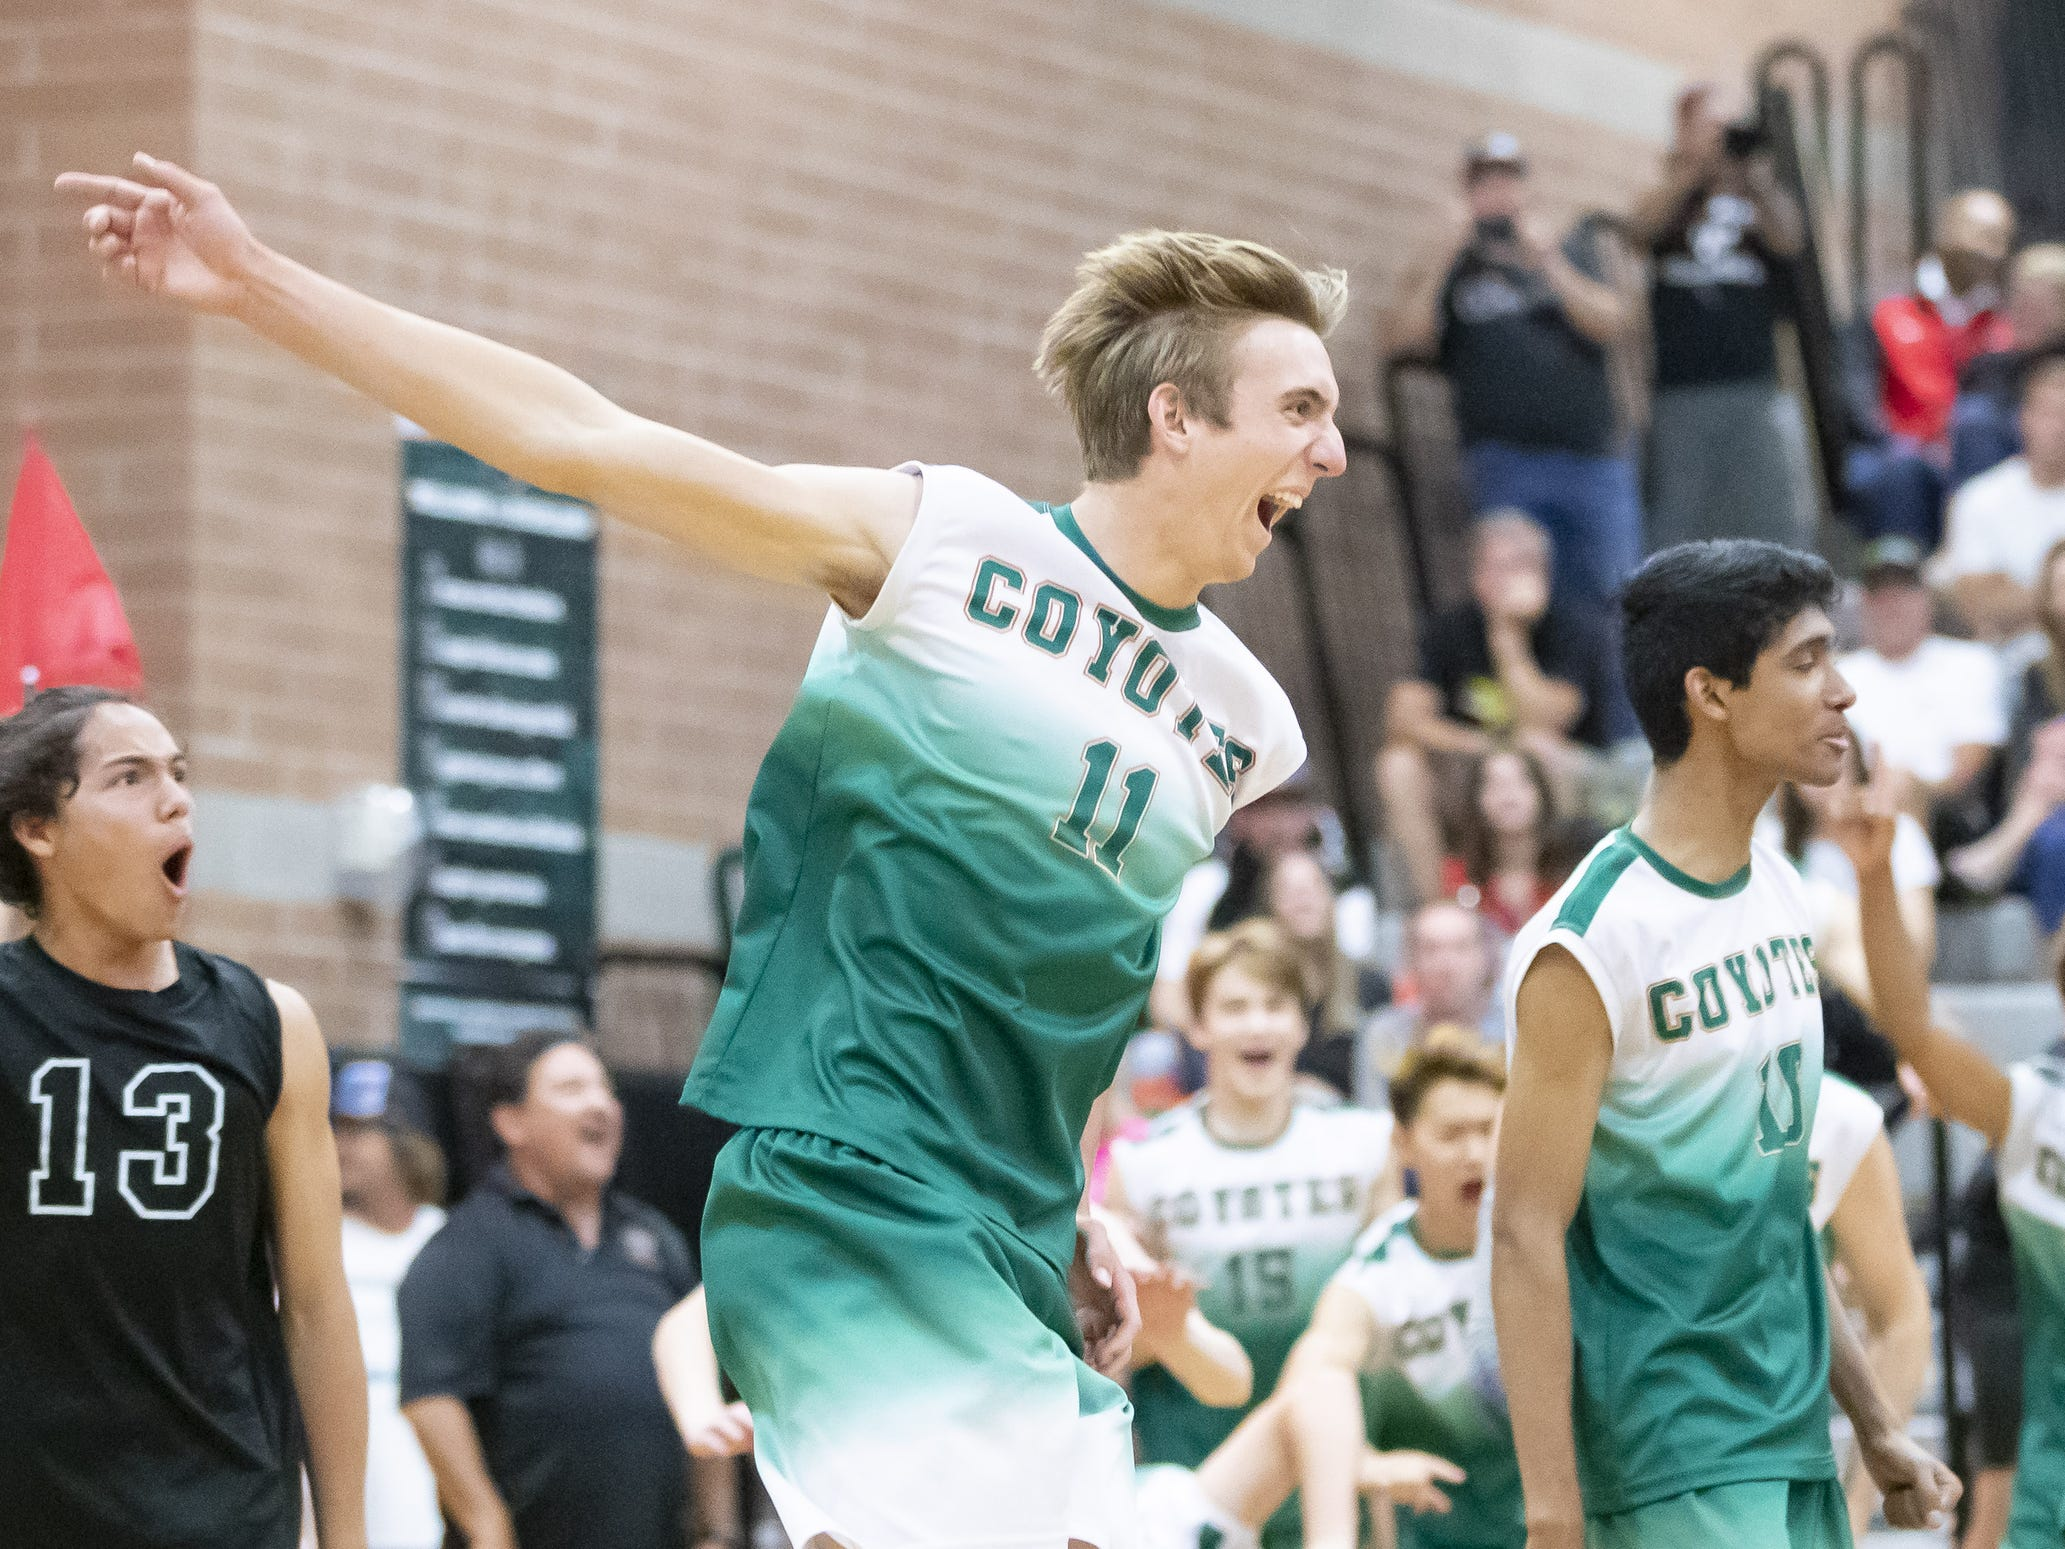 Junior middle blocker Tyler Watts (11) of the Campo Verde Coyotes celebrates Campo Verde's 3-0 win against the Tucson Mountain View Mountain Lions in the 5A Boys Volleyball State Championships at Higley High School on Saturday, May 11, 2019 in Gilbert, Arizona.